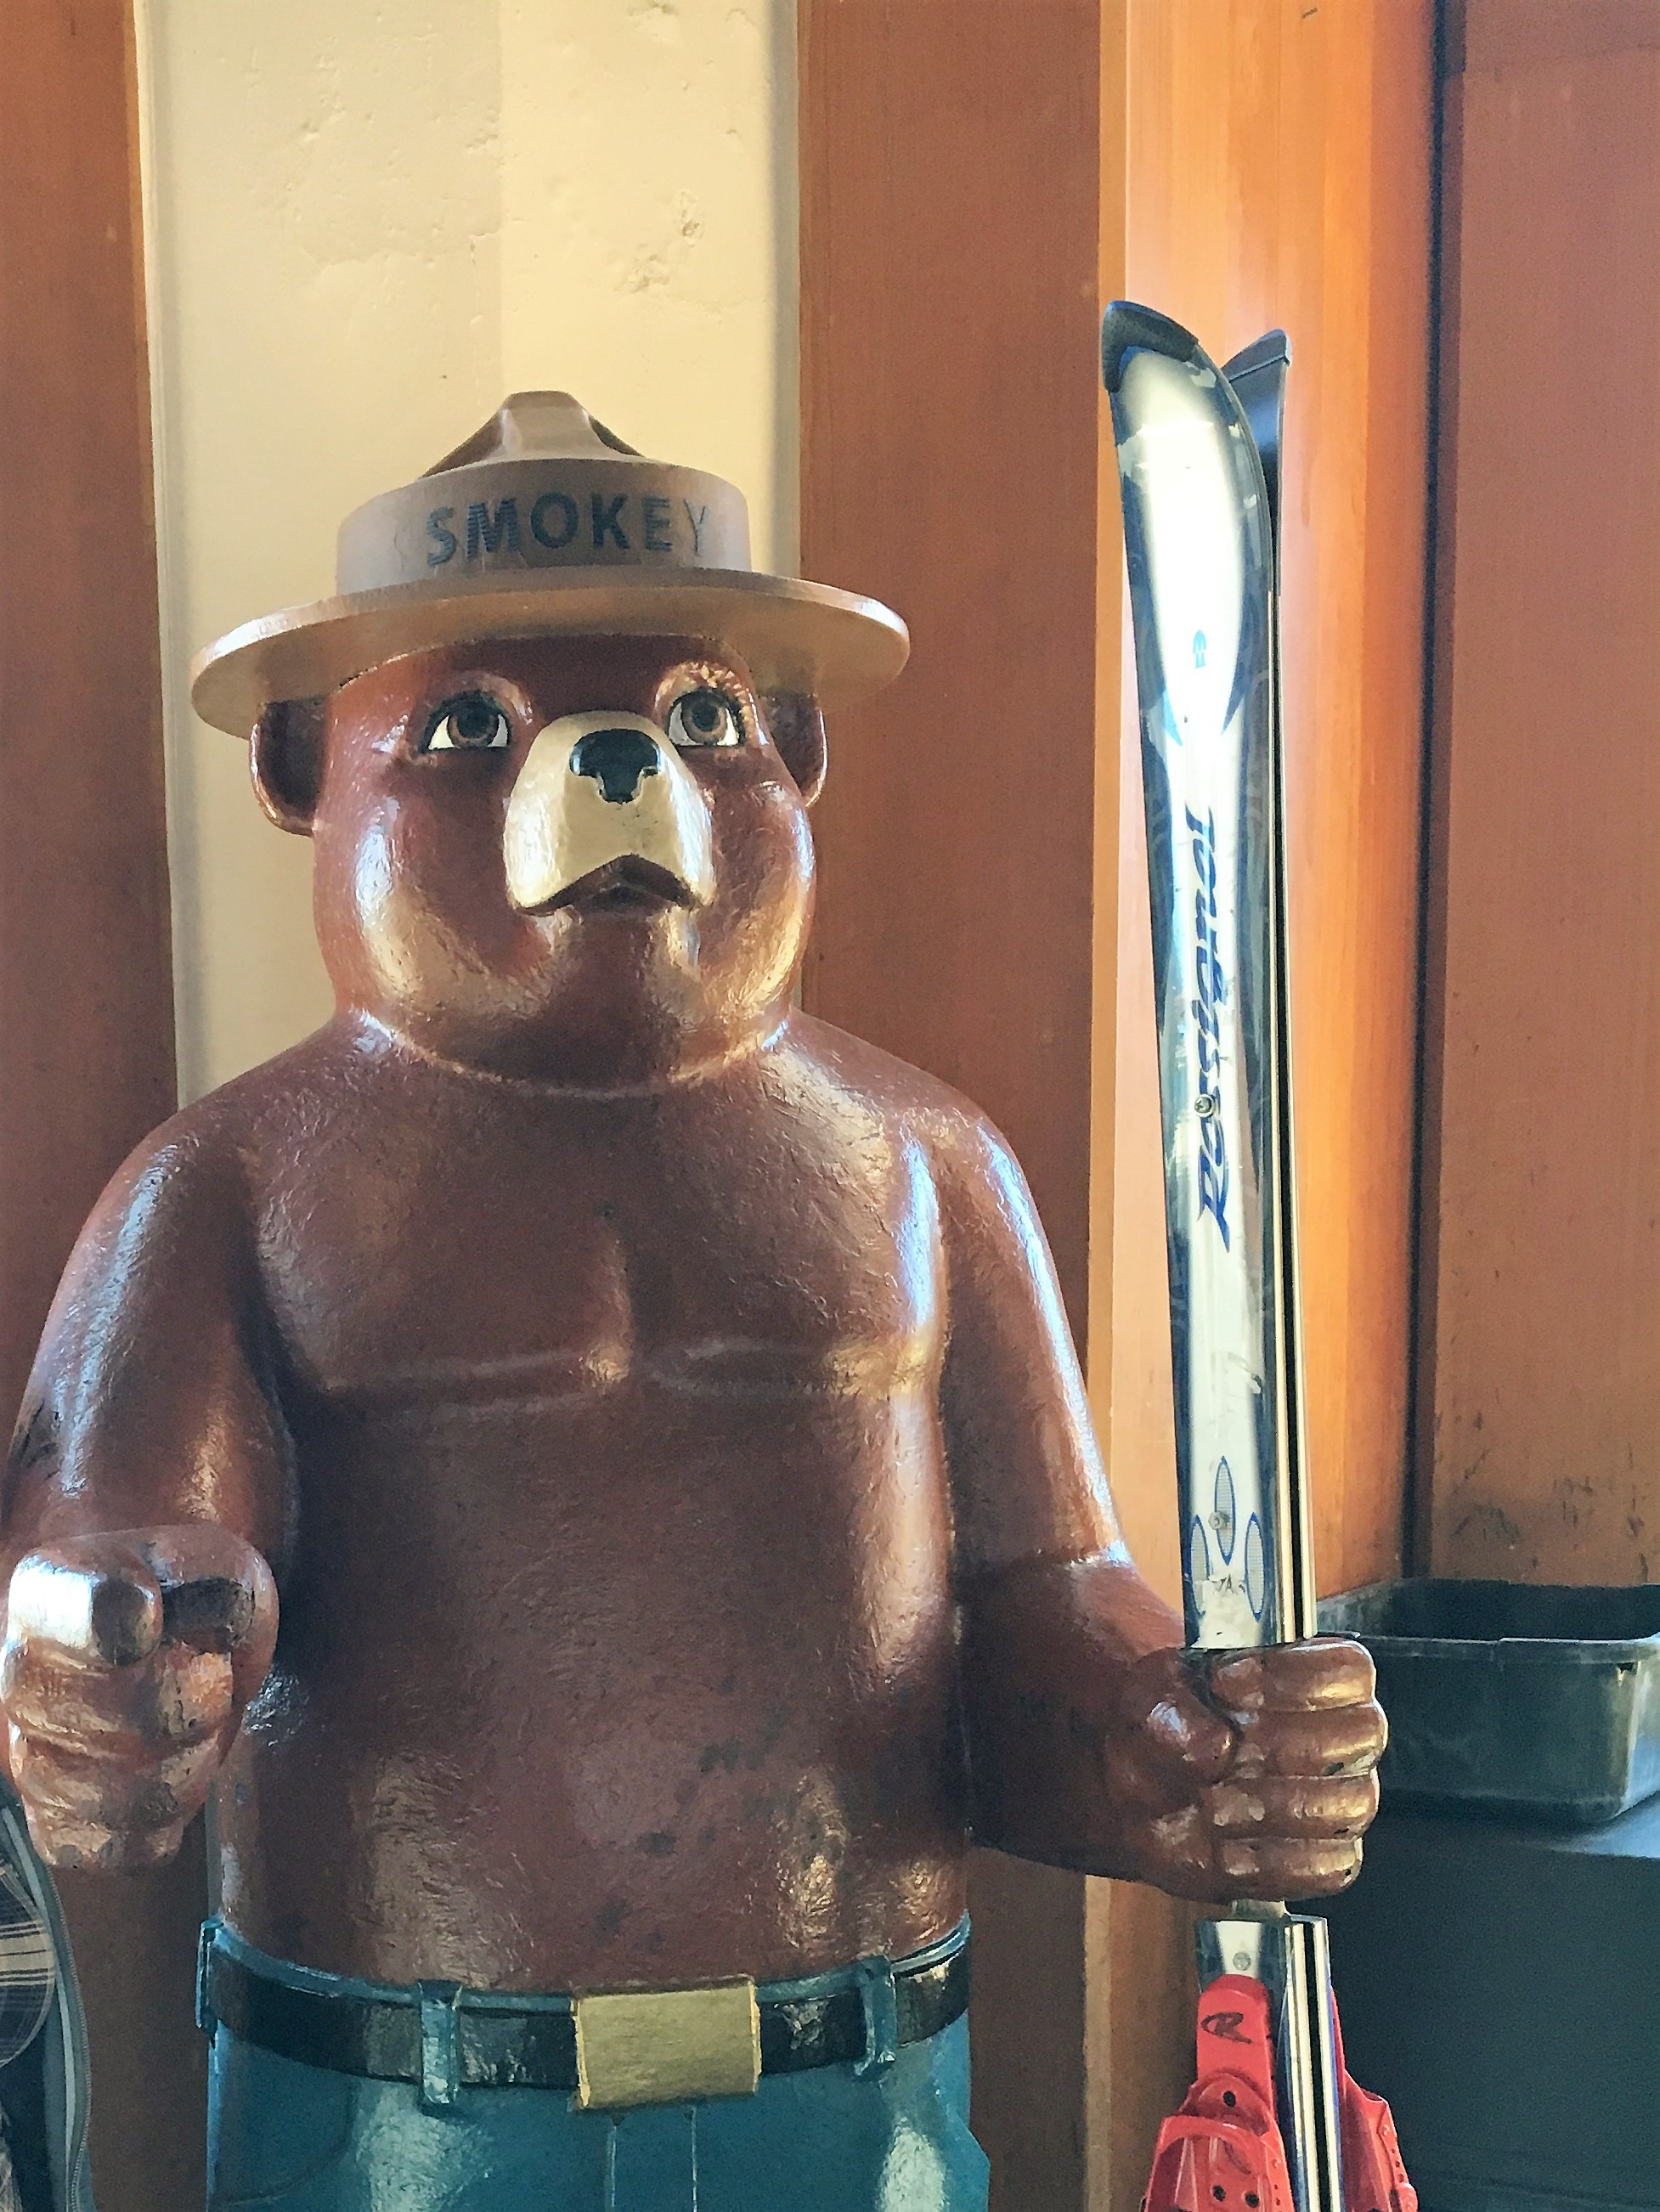 Visit Smokey the Bear in the Timberline Ski Hut Across from Lodge